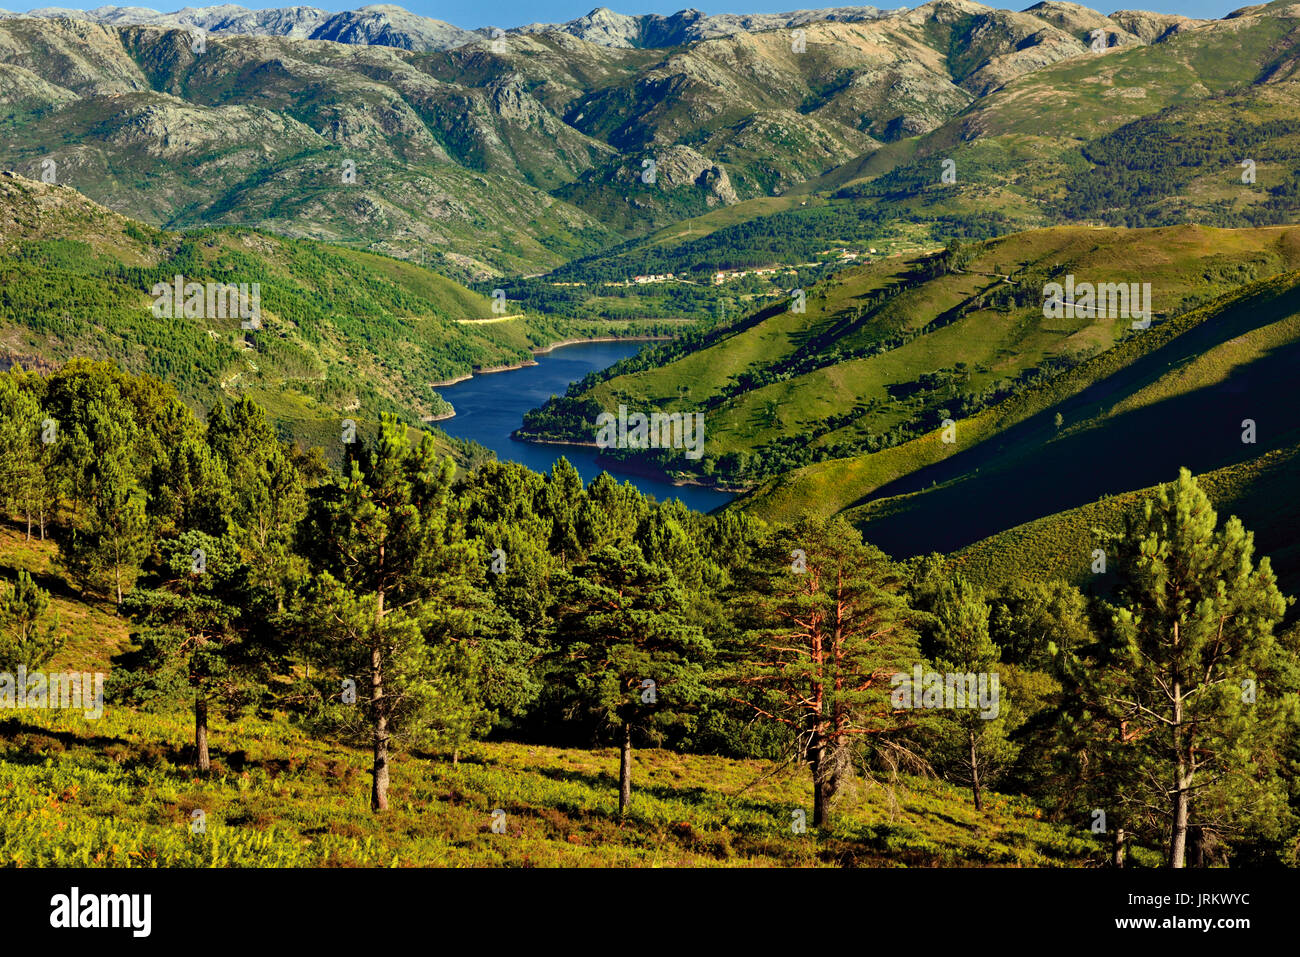 Landscape view with mountains, green hills and a barrage surroundet by pine trees - Stock Image